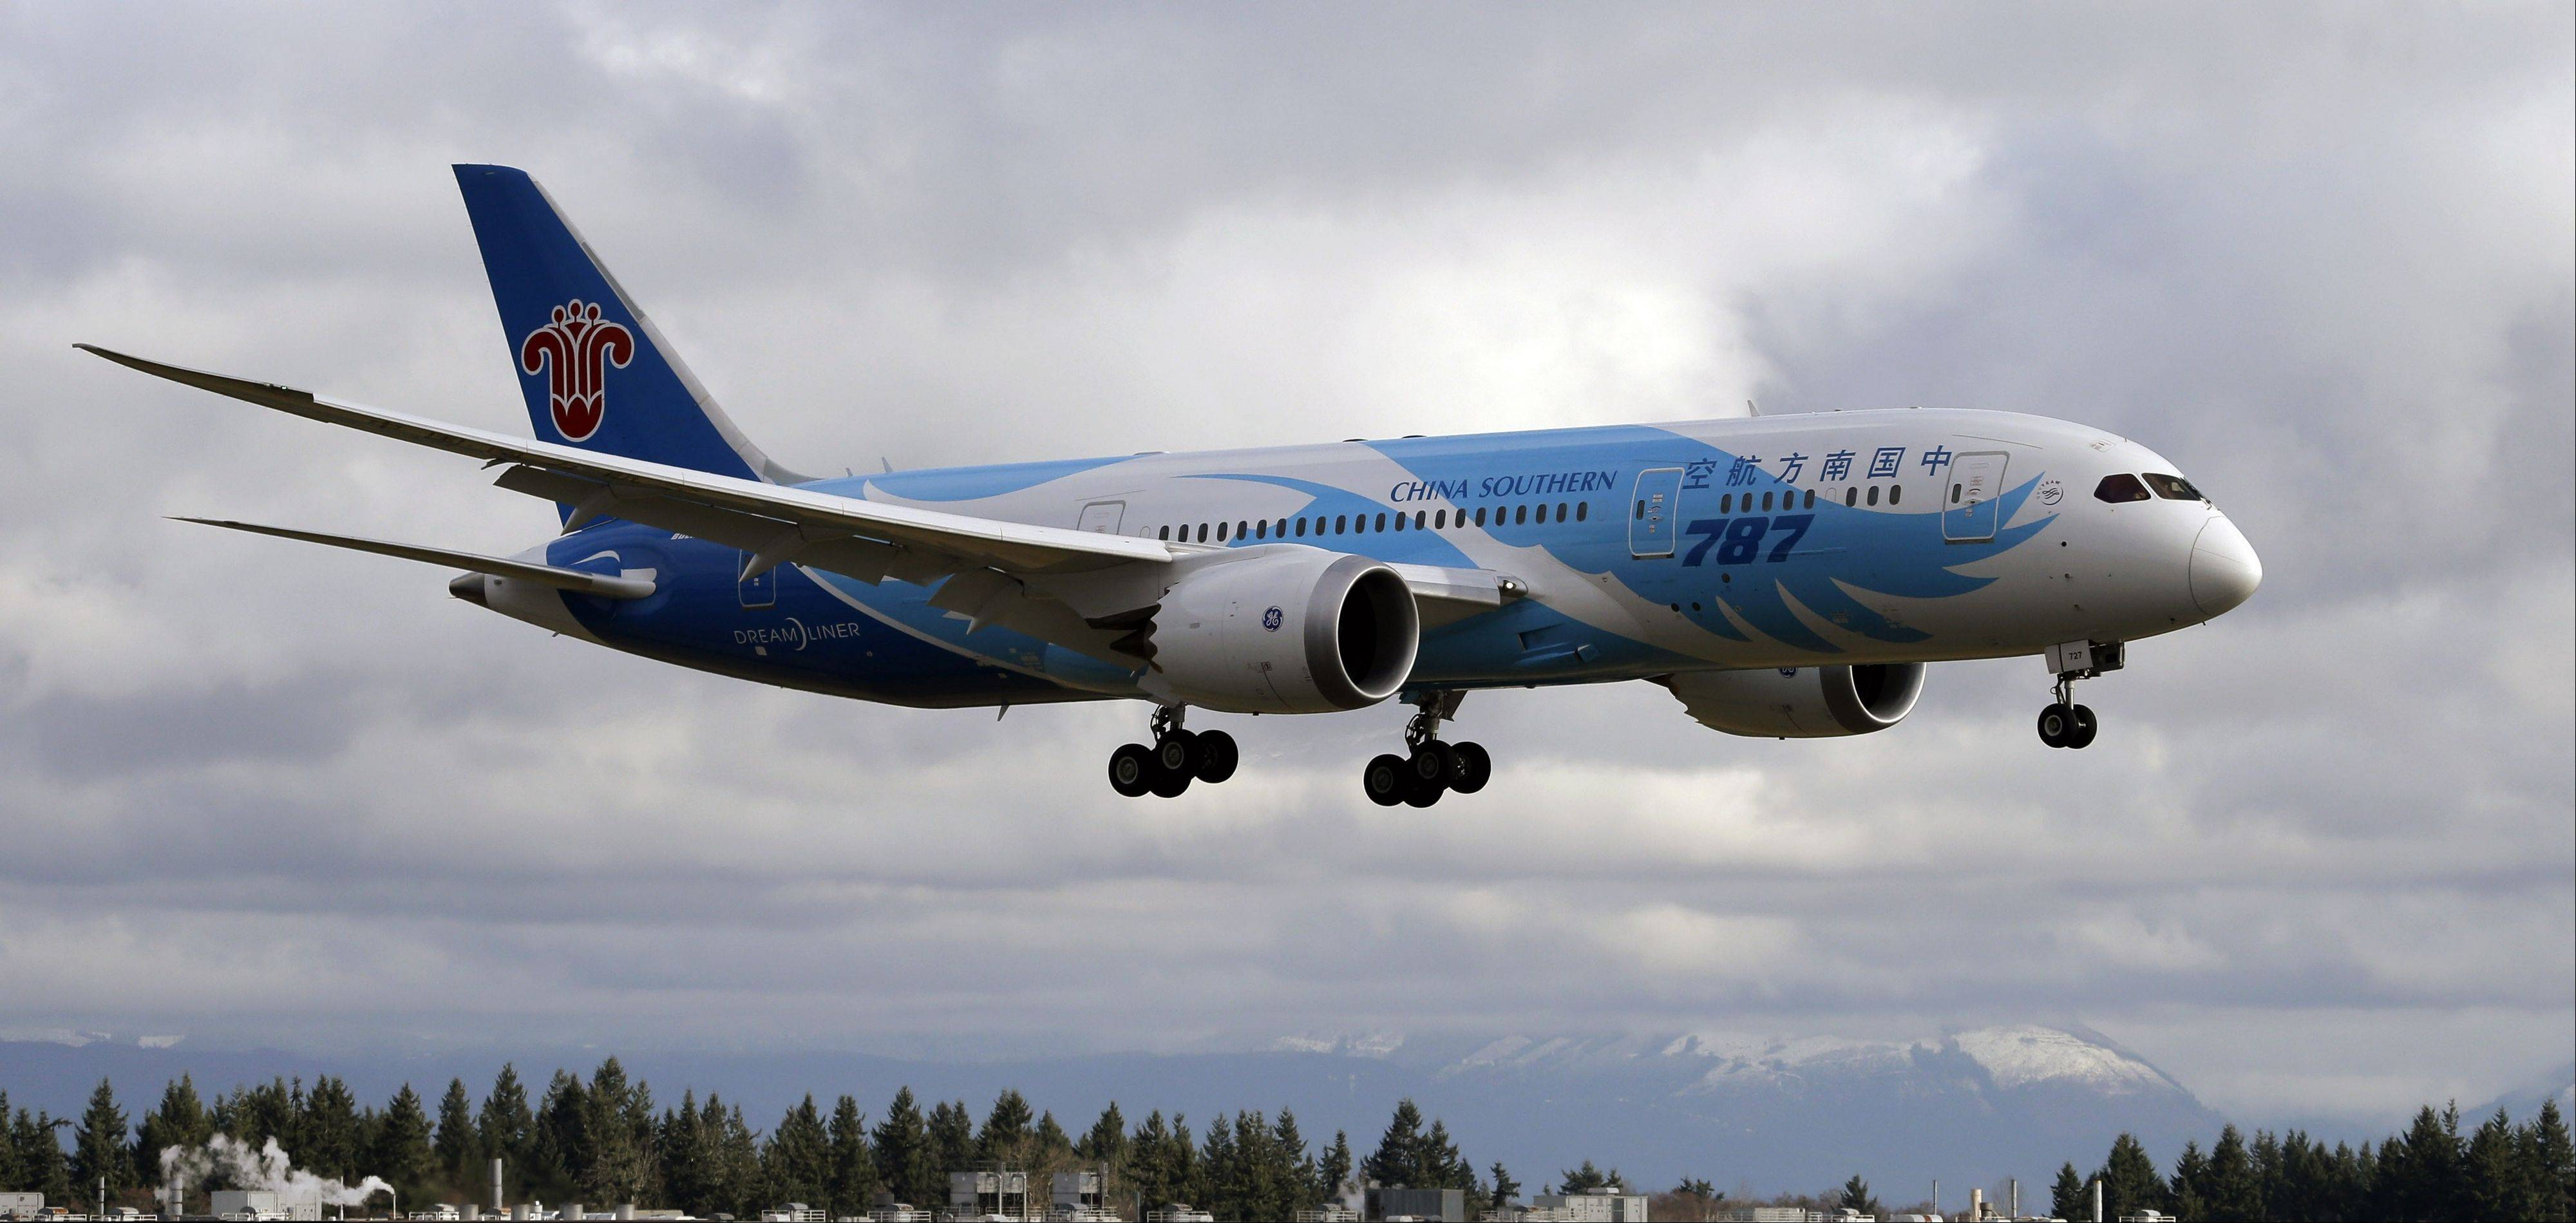 Boeing conducted another test flight of a 787 Dreamliner on Monday, the second since the FAA grounded Boeing�s newest airliner in January.